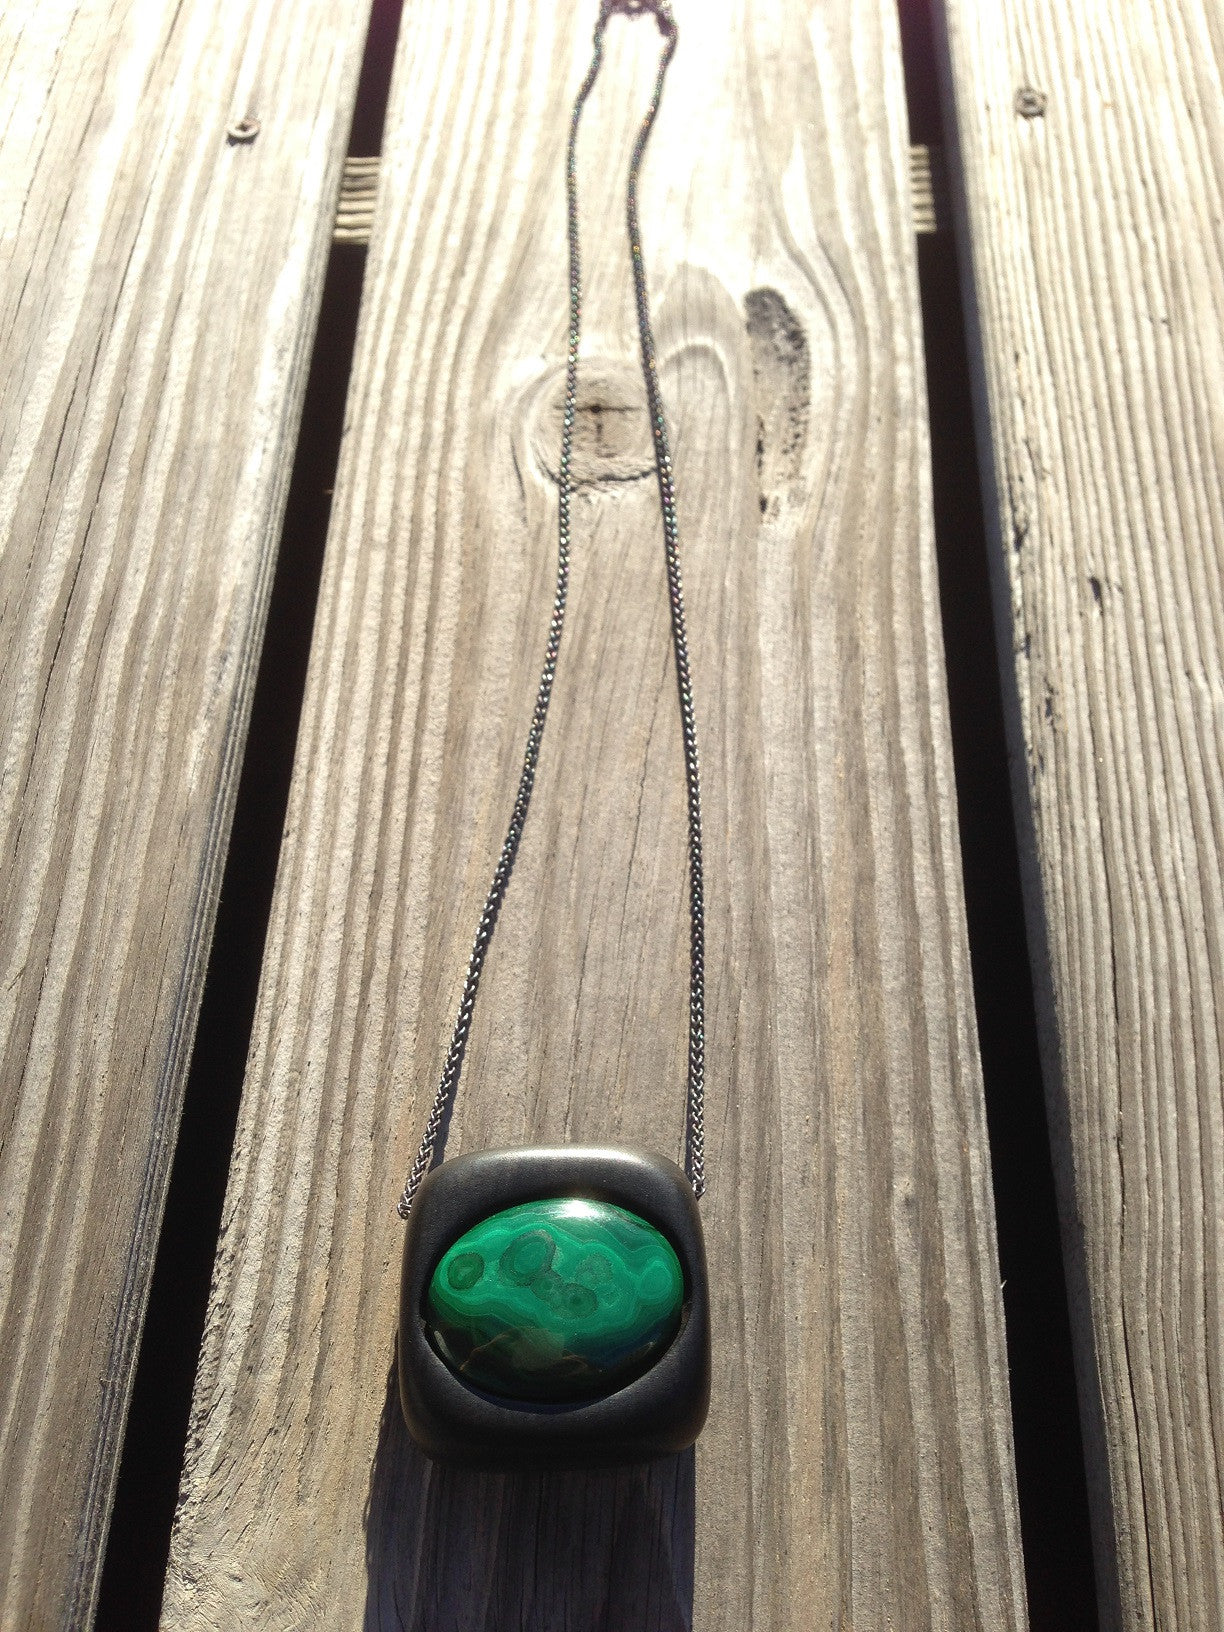 Ebony and Malachite Pendant